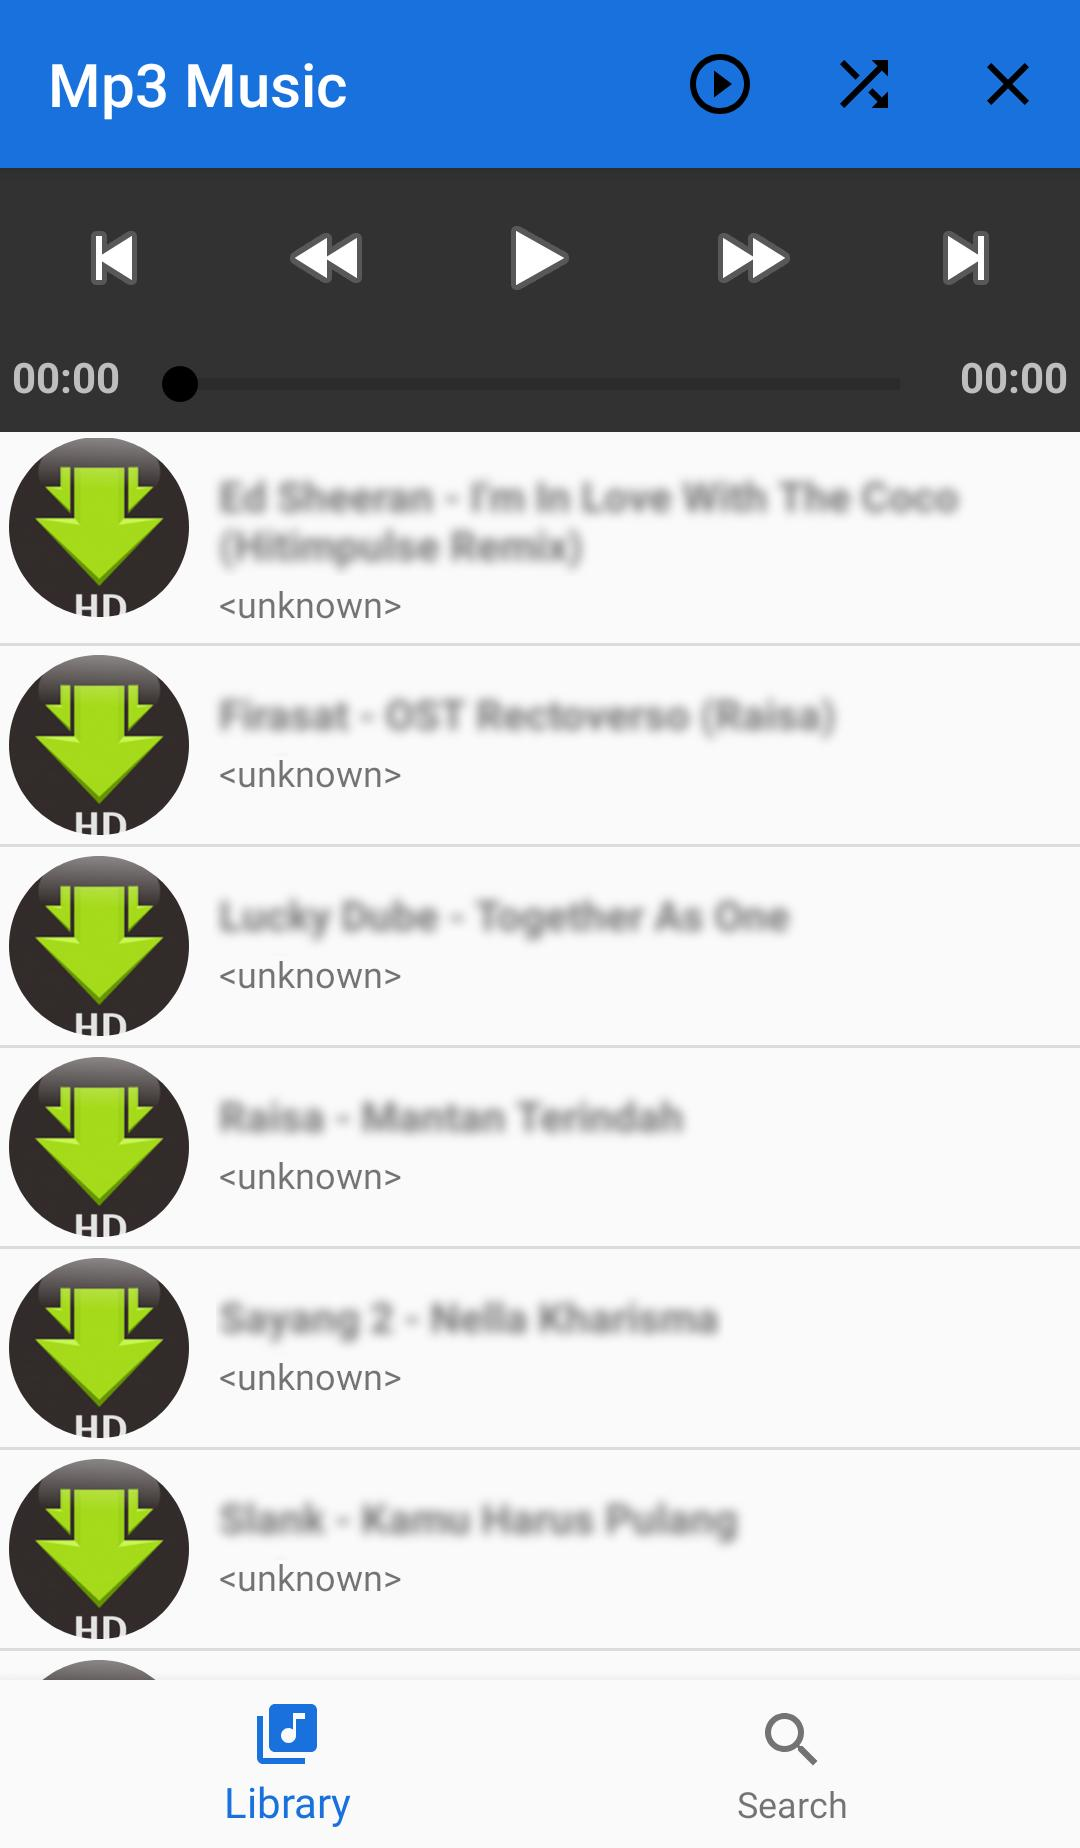 Free Savefrom net MP3 Music Download for Android - APK Download